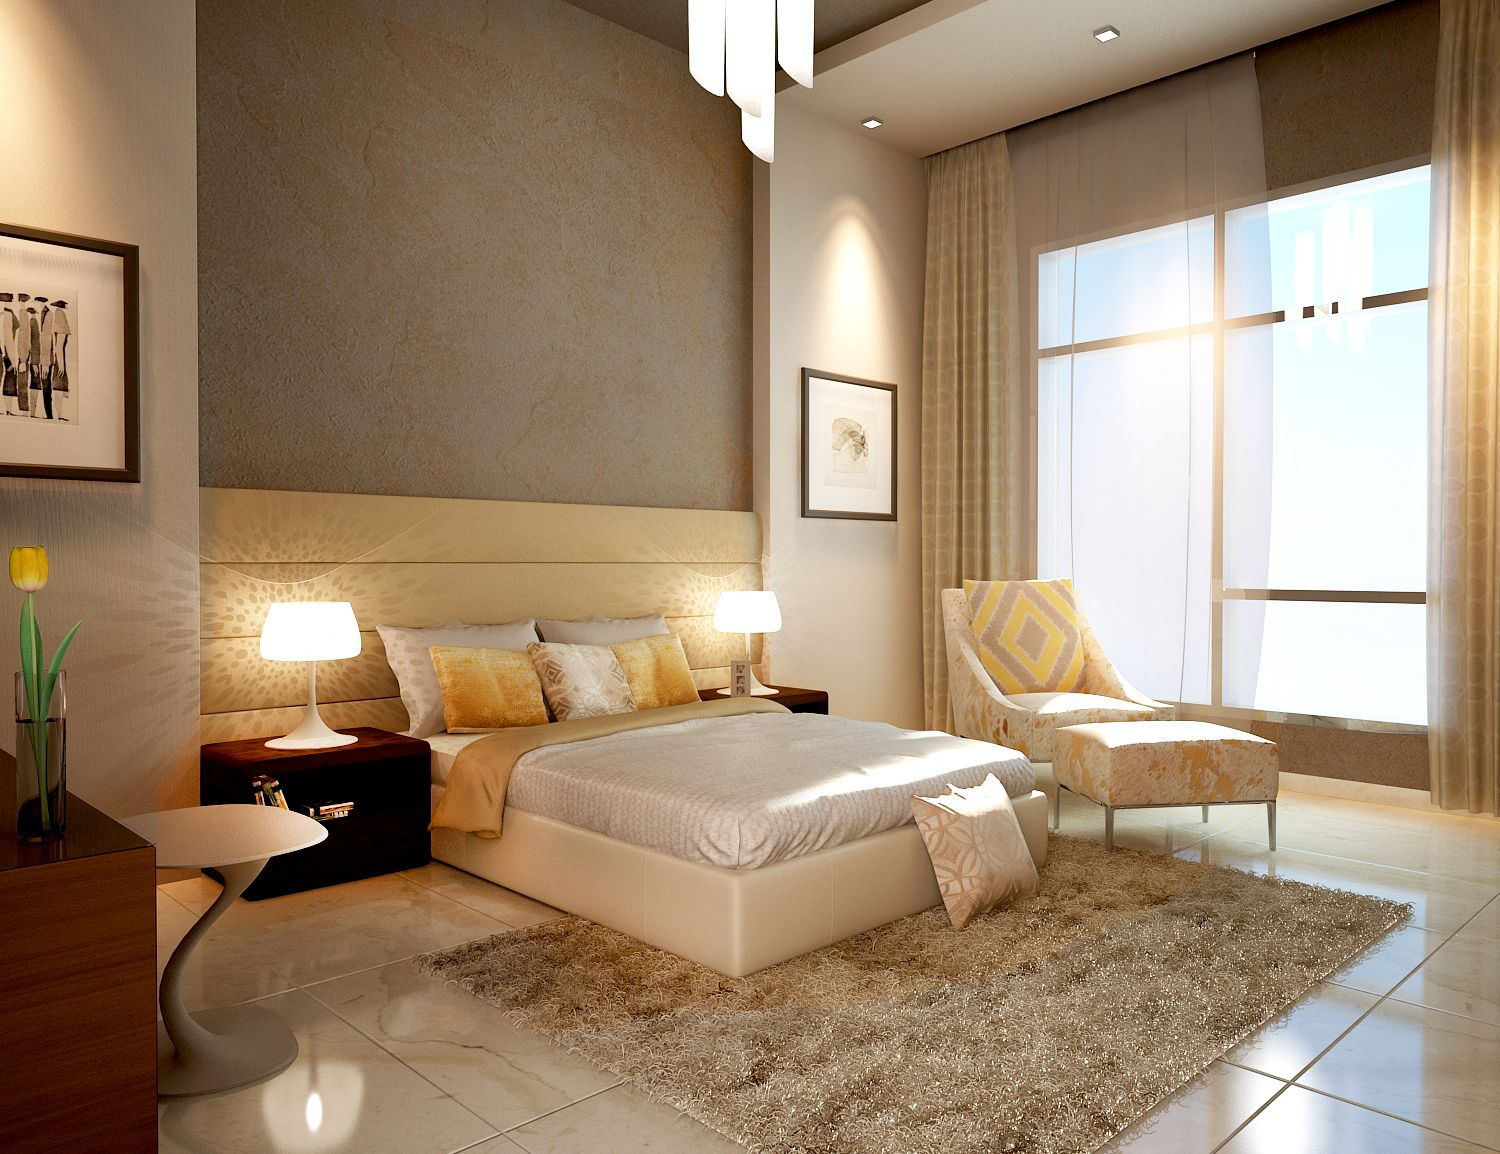 Bedroom Designer Free 3d Render 3ds Max Bedroom Modern Bedroom Master